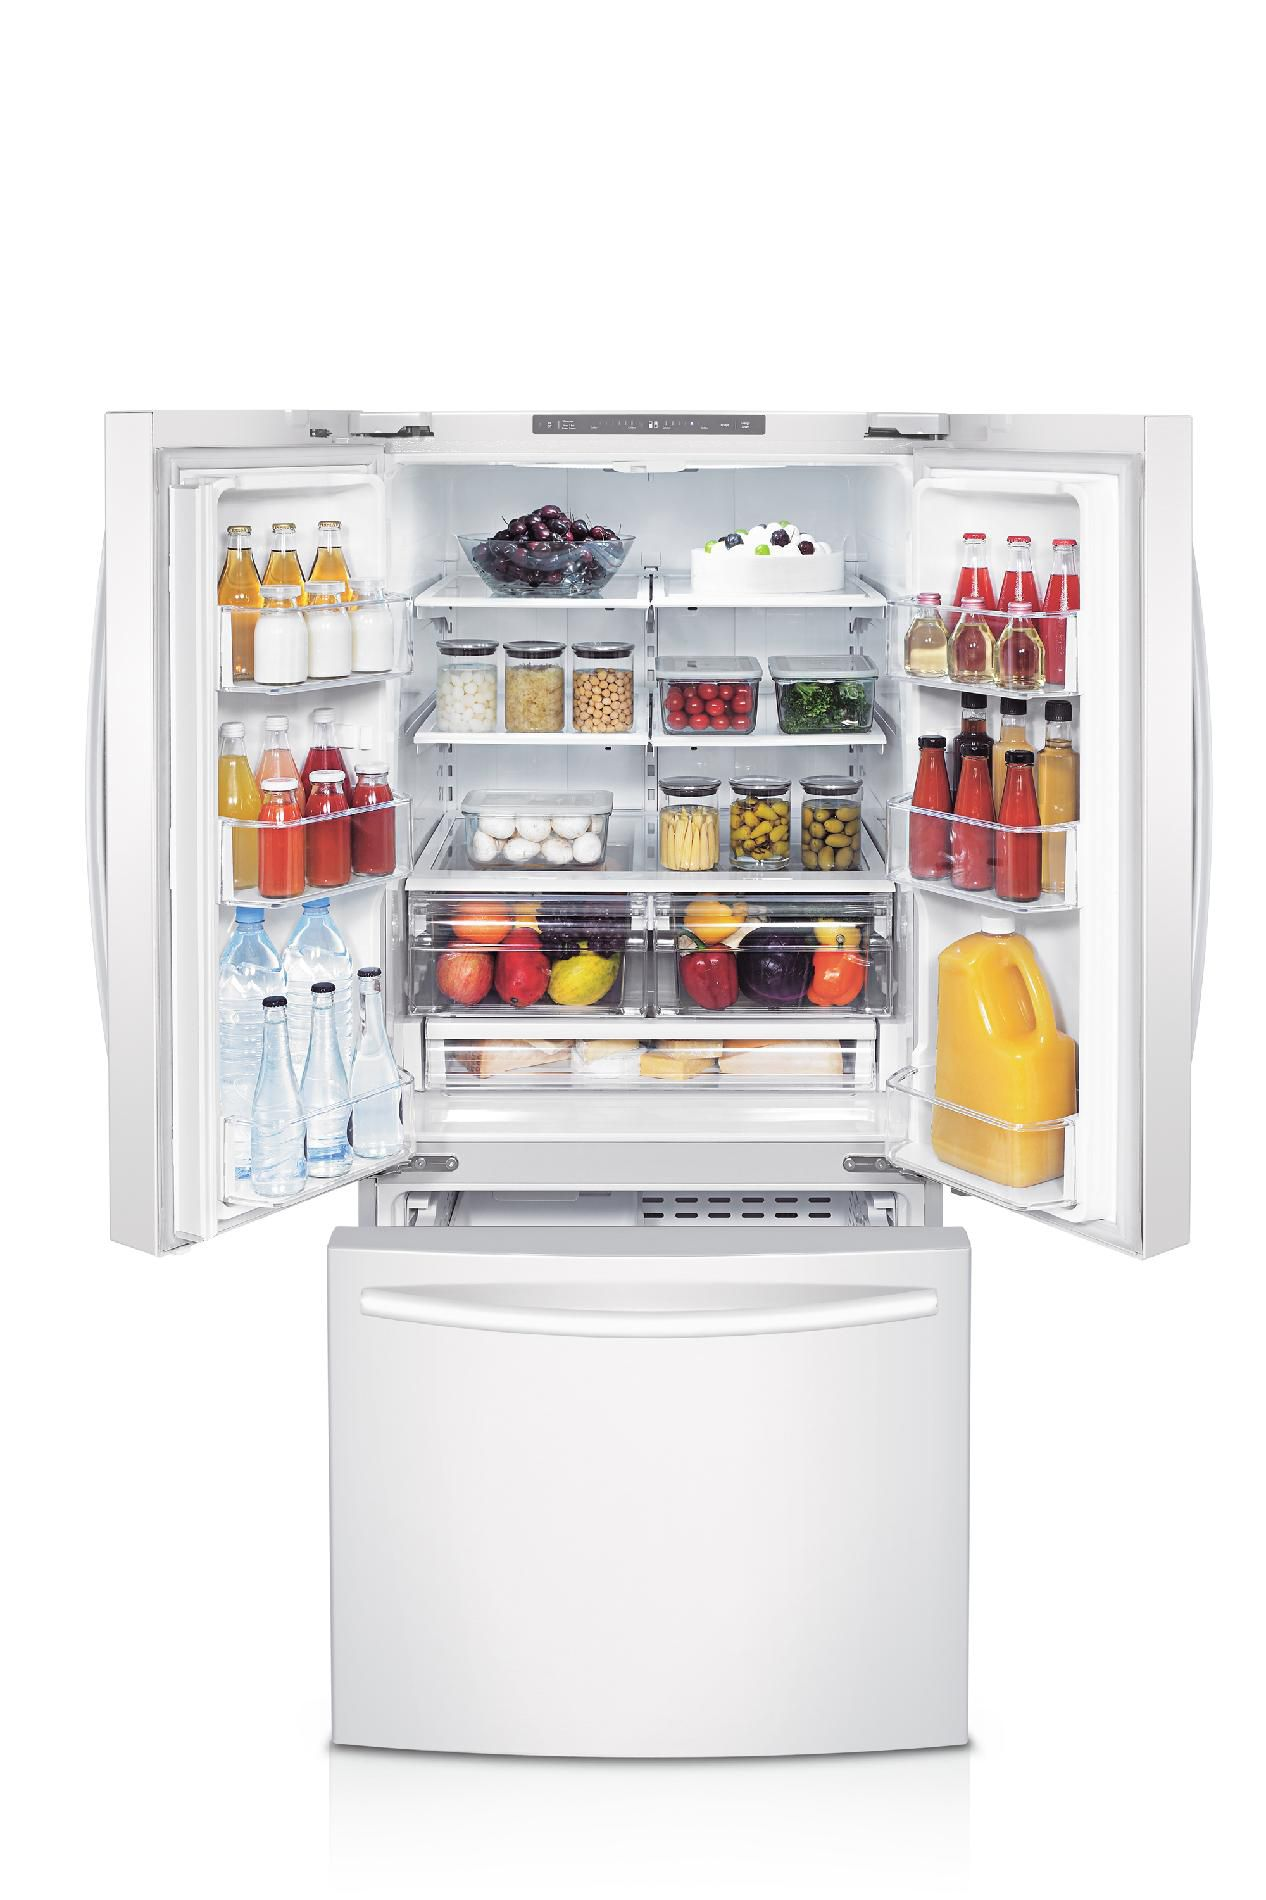 Samsung 22 cu. ft. French Door Refrigerator w/ Internal  Water Dispenser - White